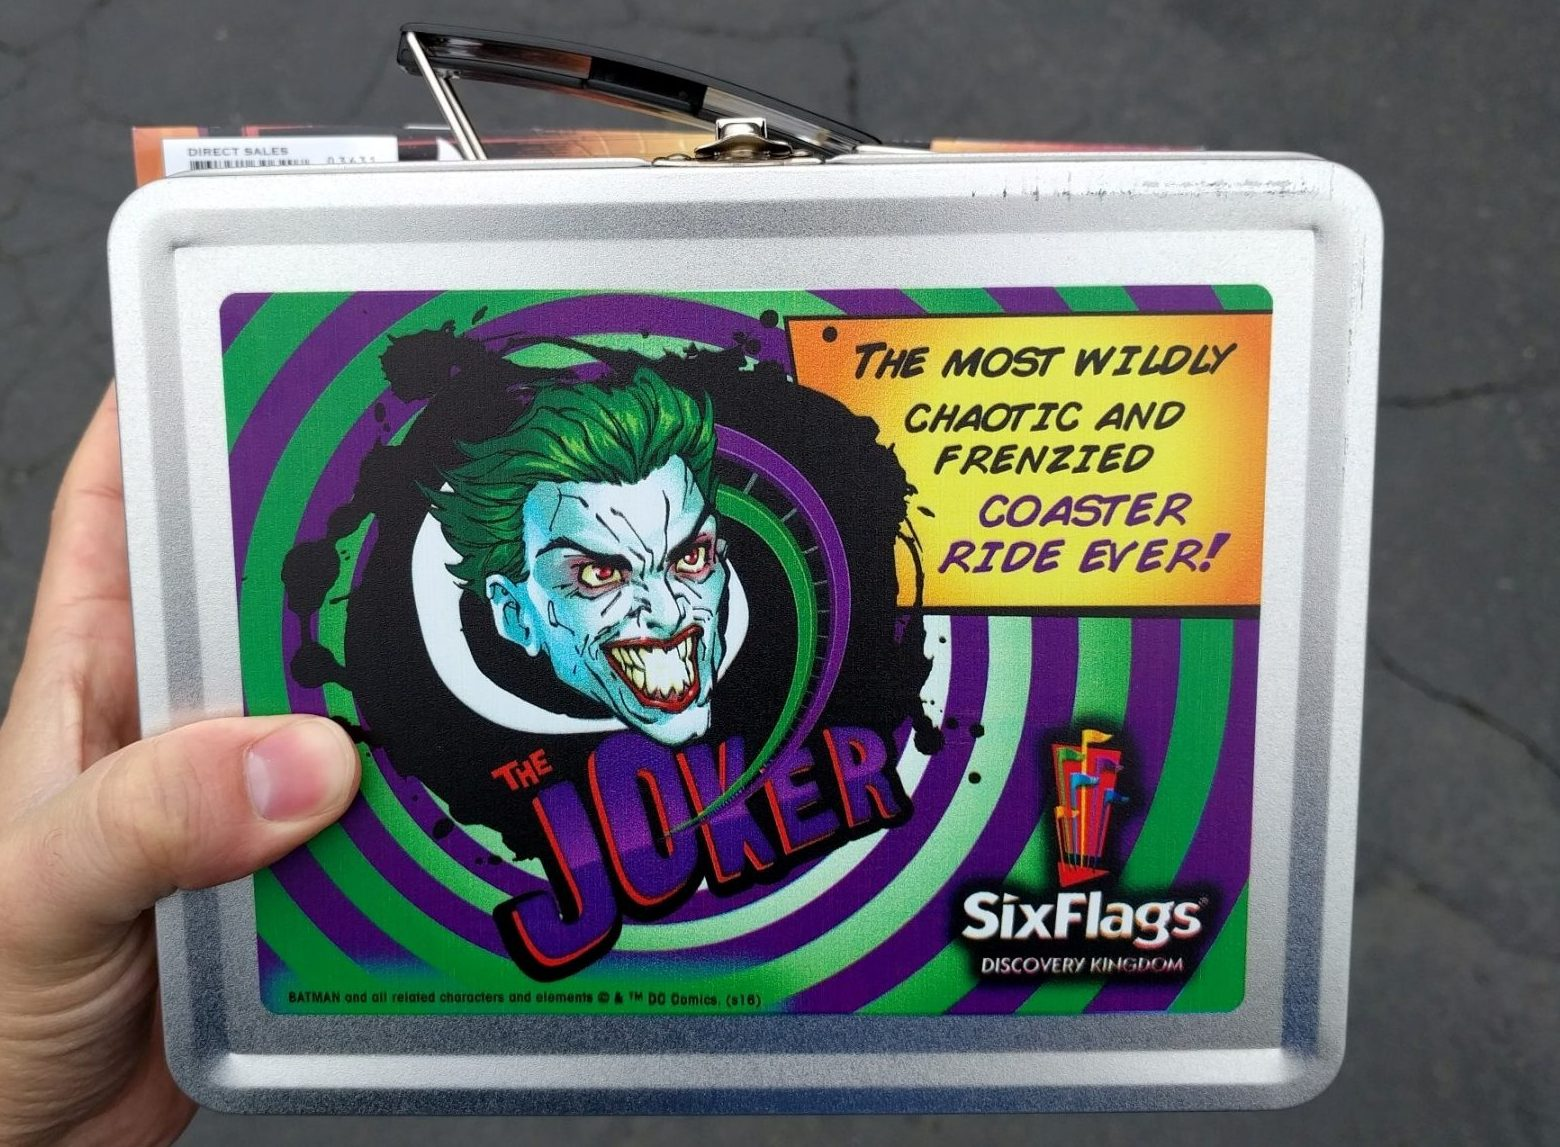 Maybe not perfect, but The Joker is an excellent new Coaster. Plus I got this sweet lunch box.